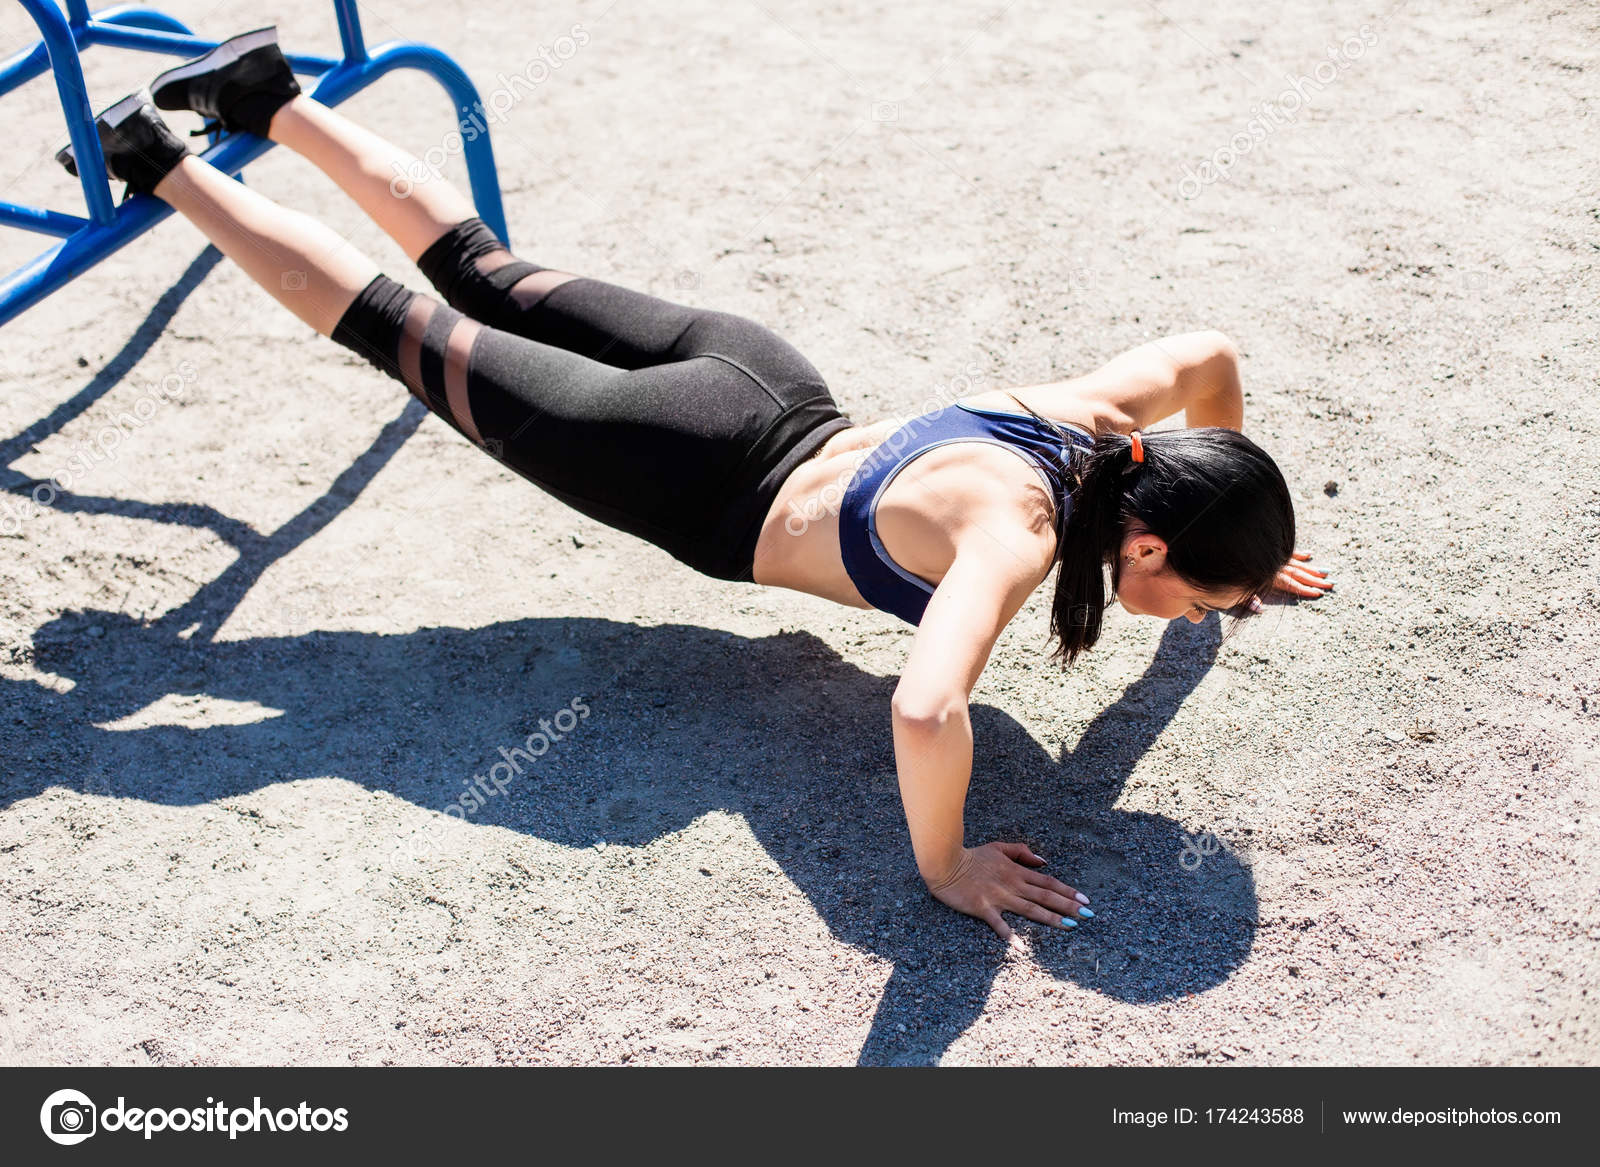 133f5eebc5056 Young sportive teenager in a bright blue sport bra and black leggings doing  push ups on the sport playground. Photo of an athlete girl with a beautiful  ...